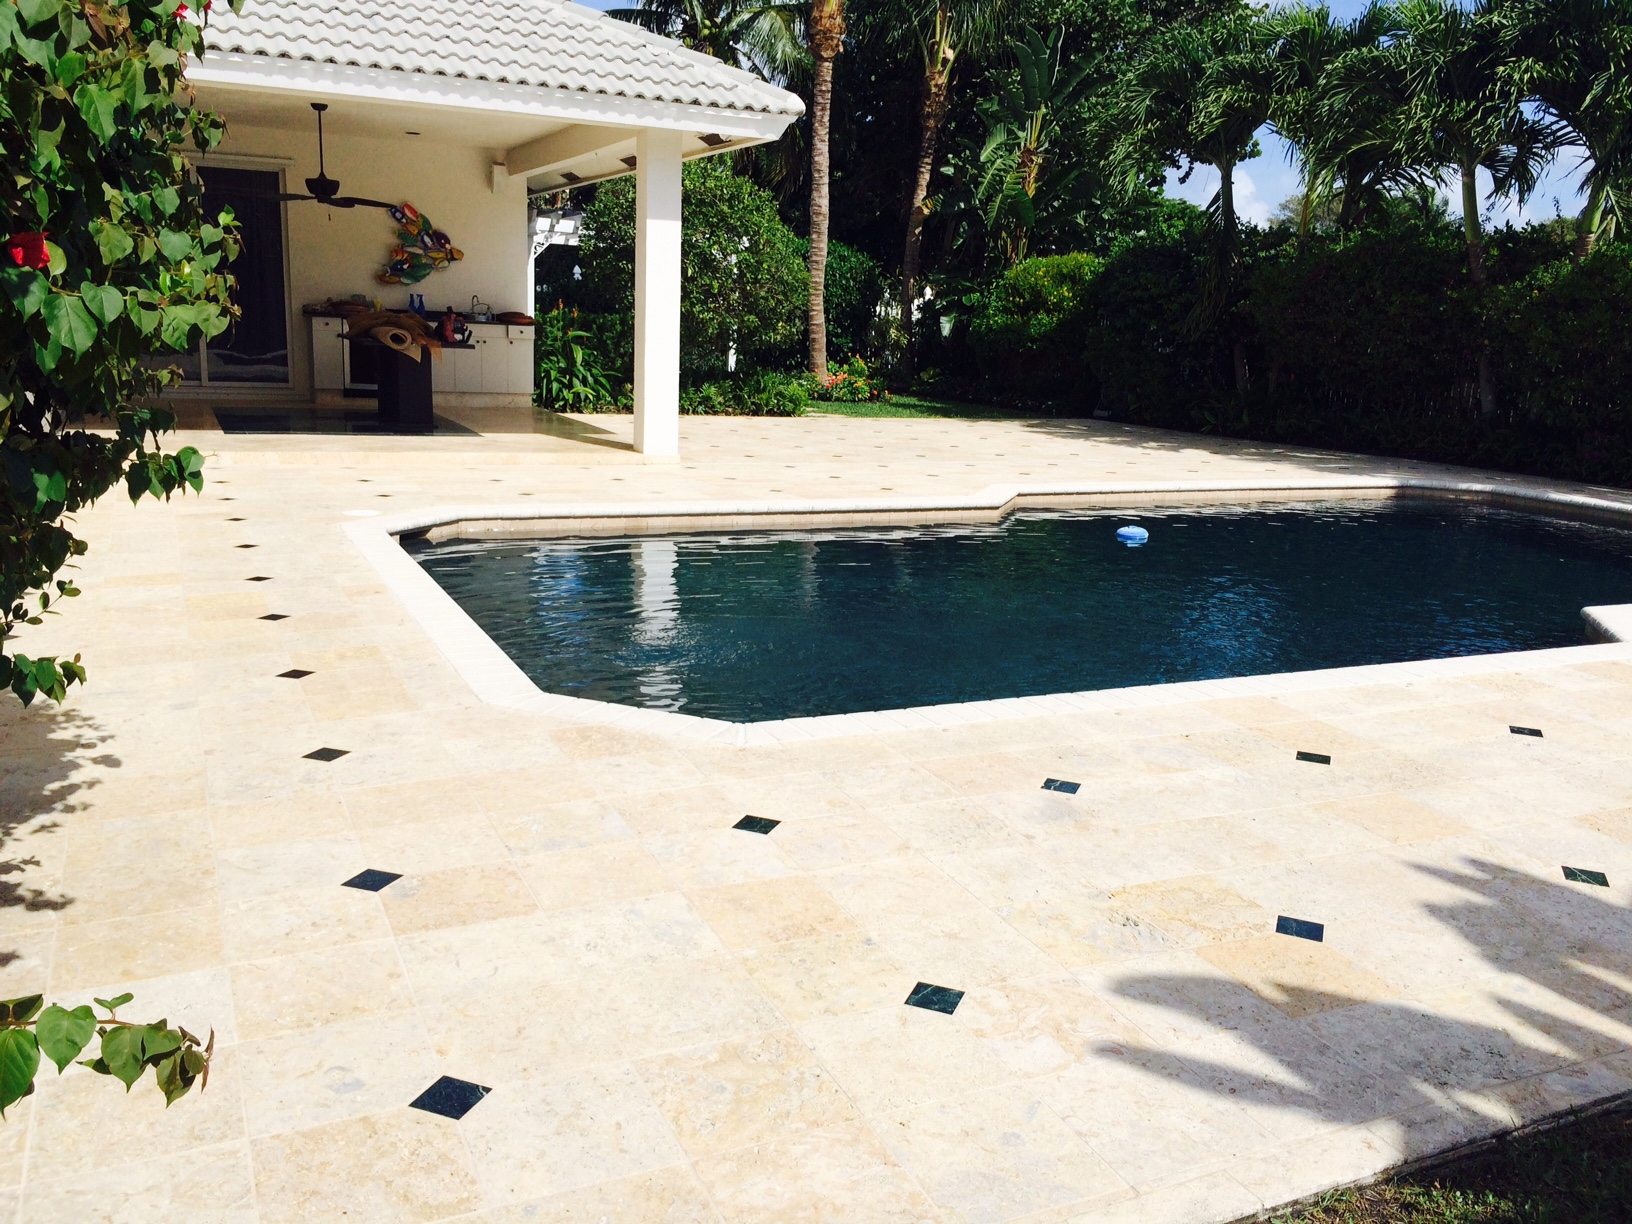 Travertine Pool Deck Sealer Pool Deck And Driveway Sealing Company Fort Lauderdale  Broward